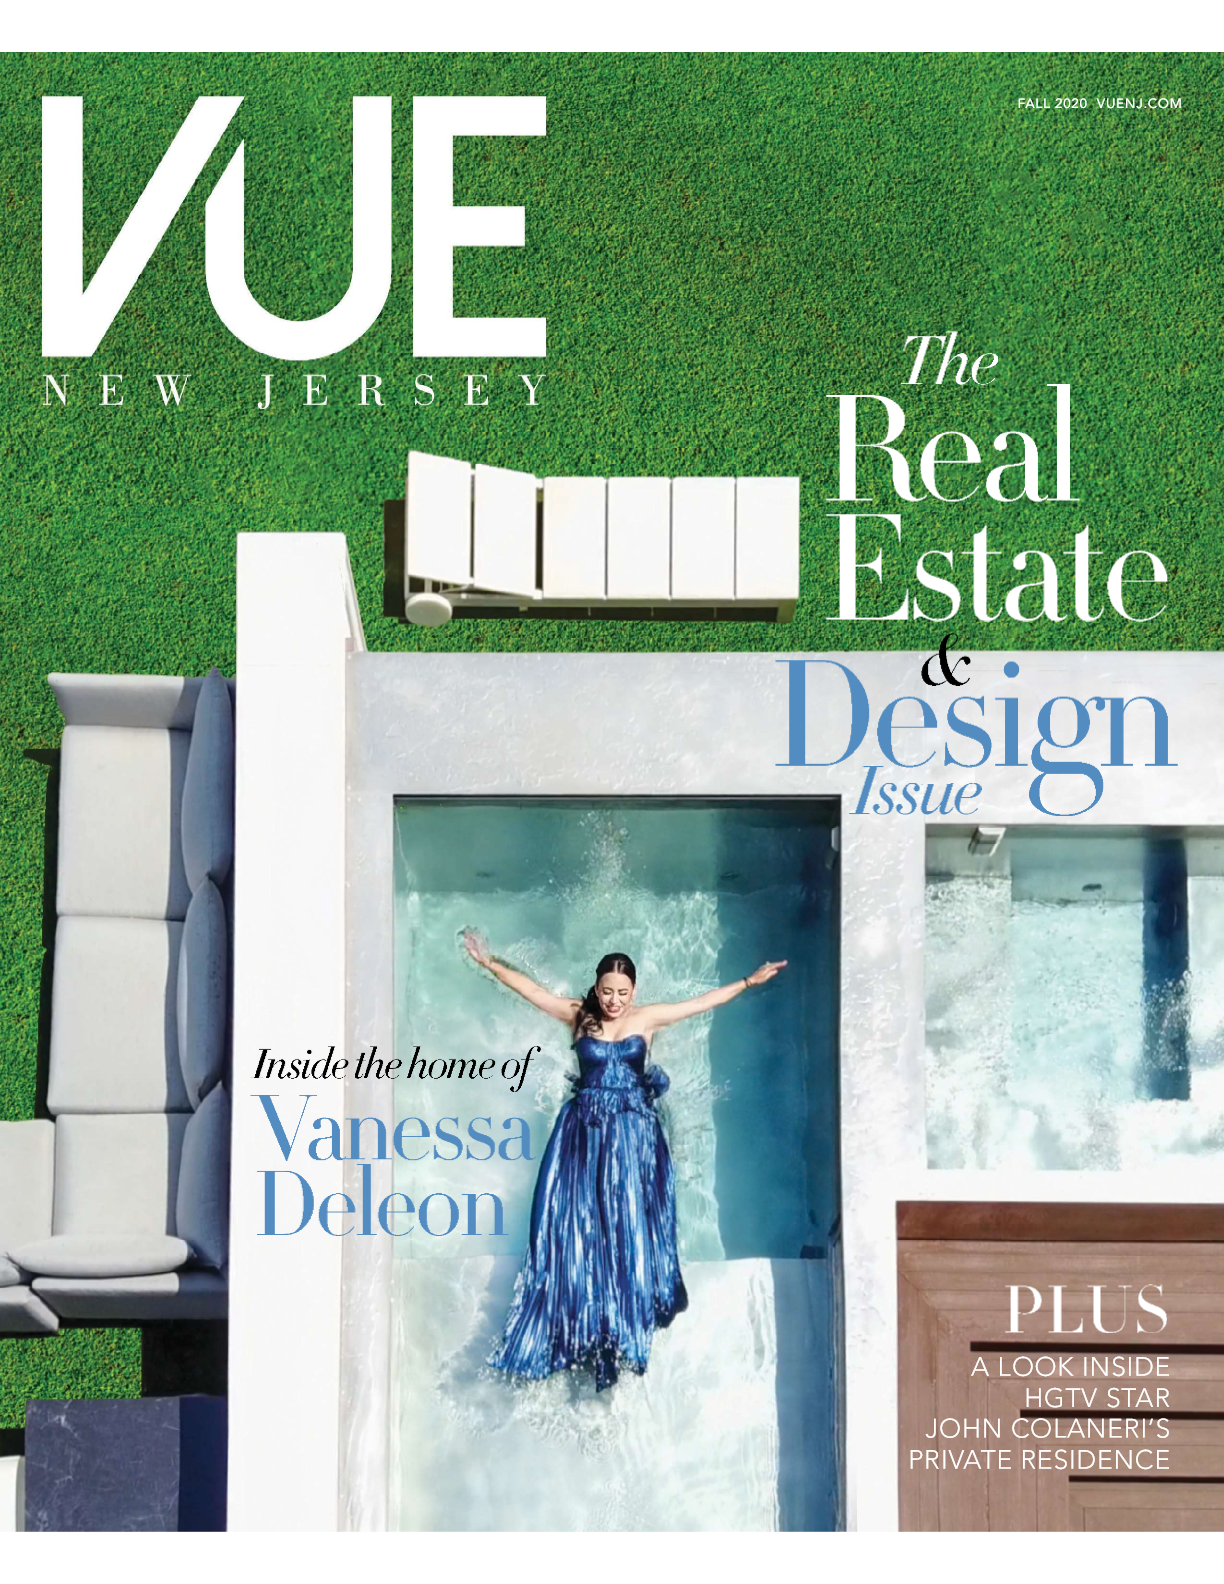 VUE Cover